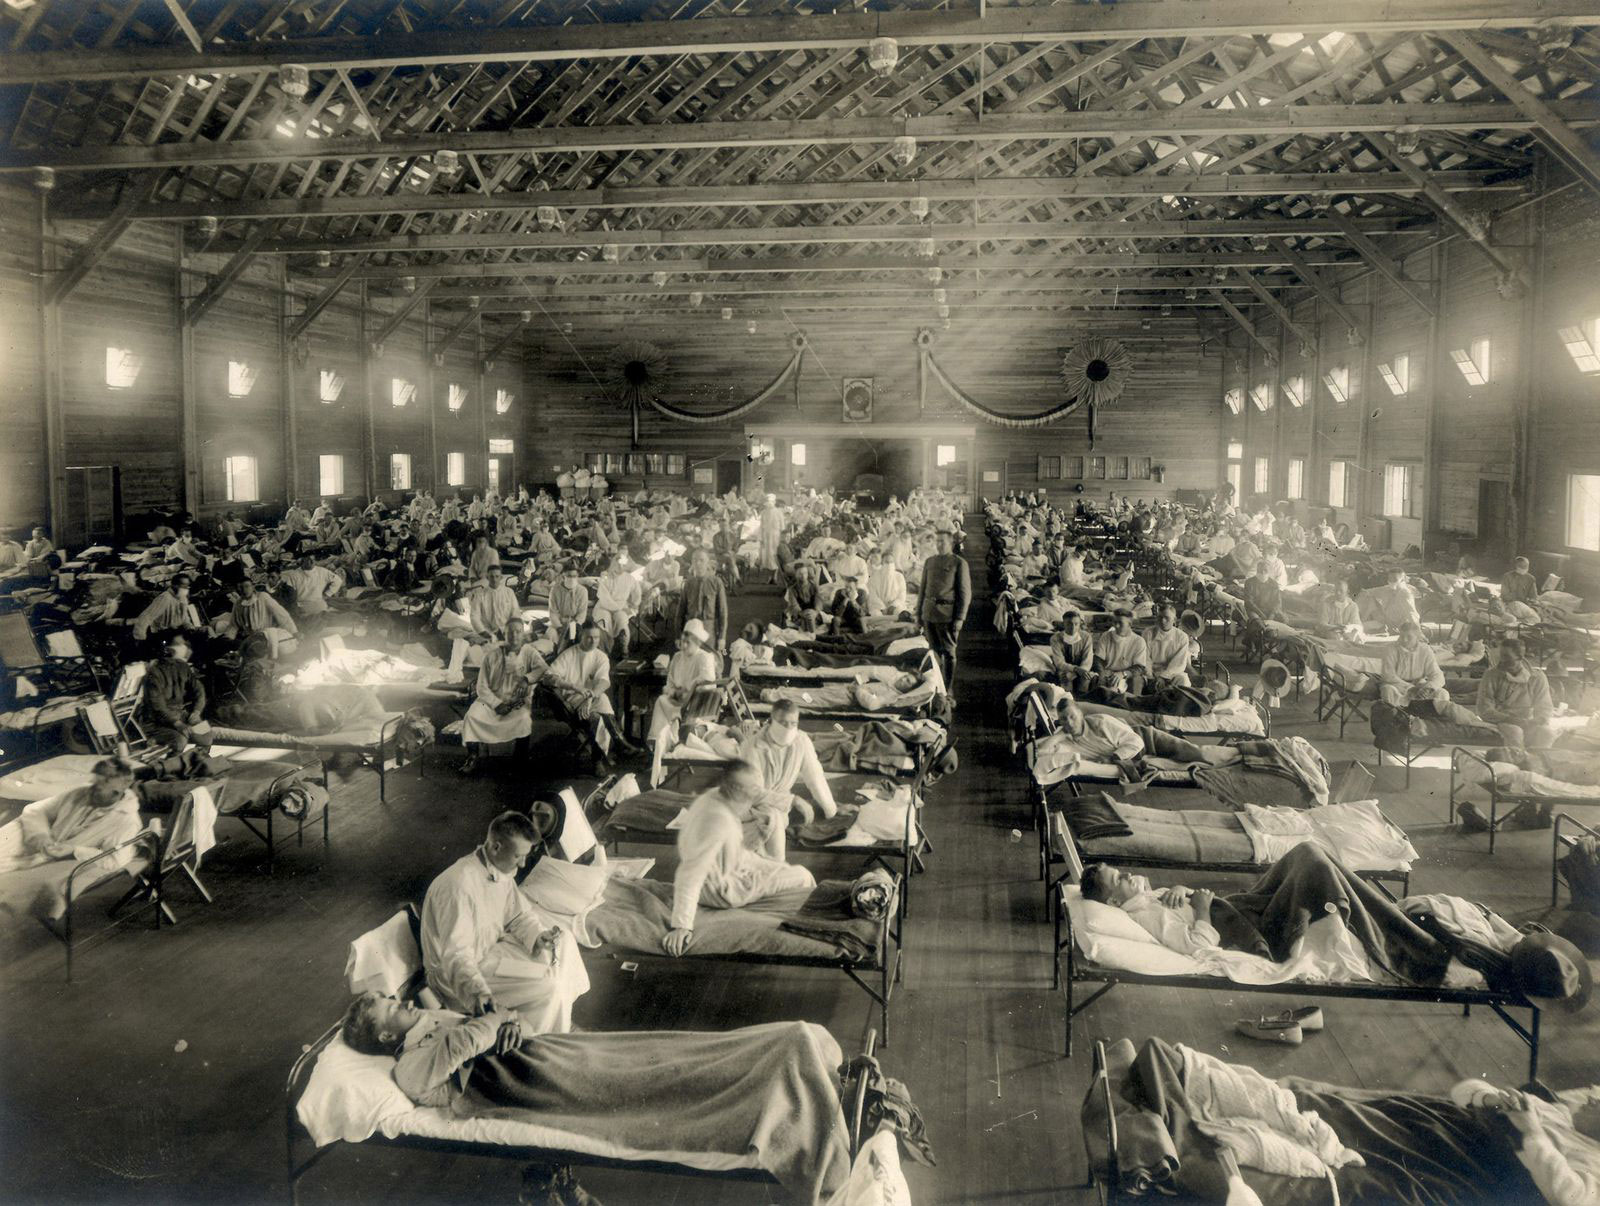 'A Once-in-a-Century Pathogen': The 1918 Pandemic & This One